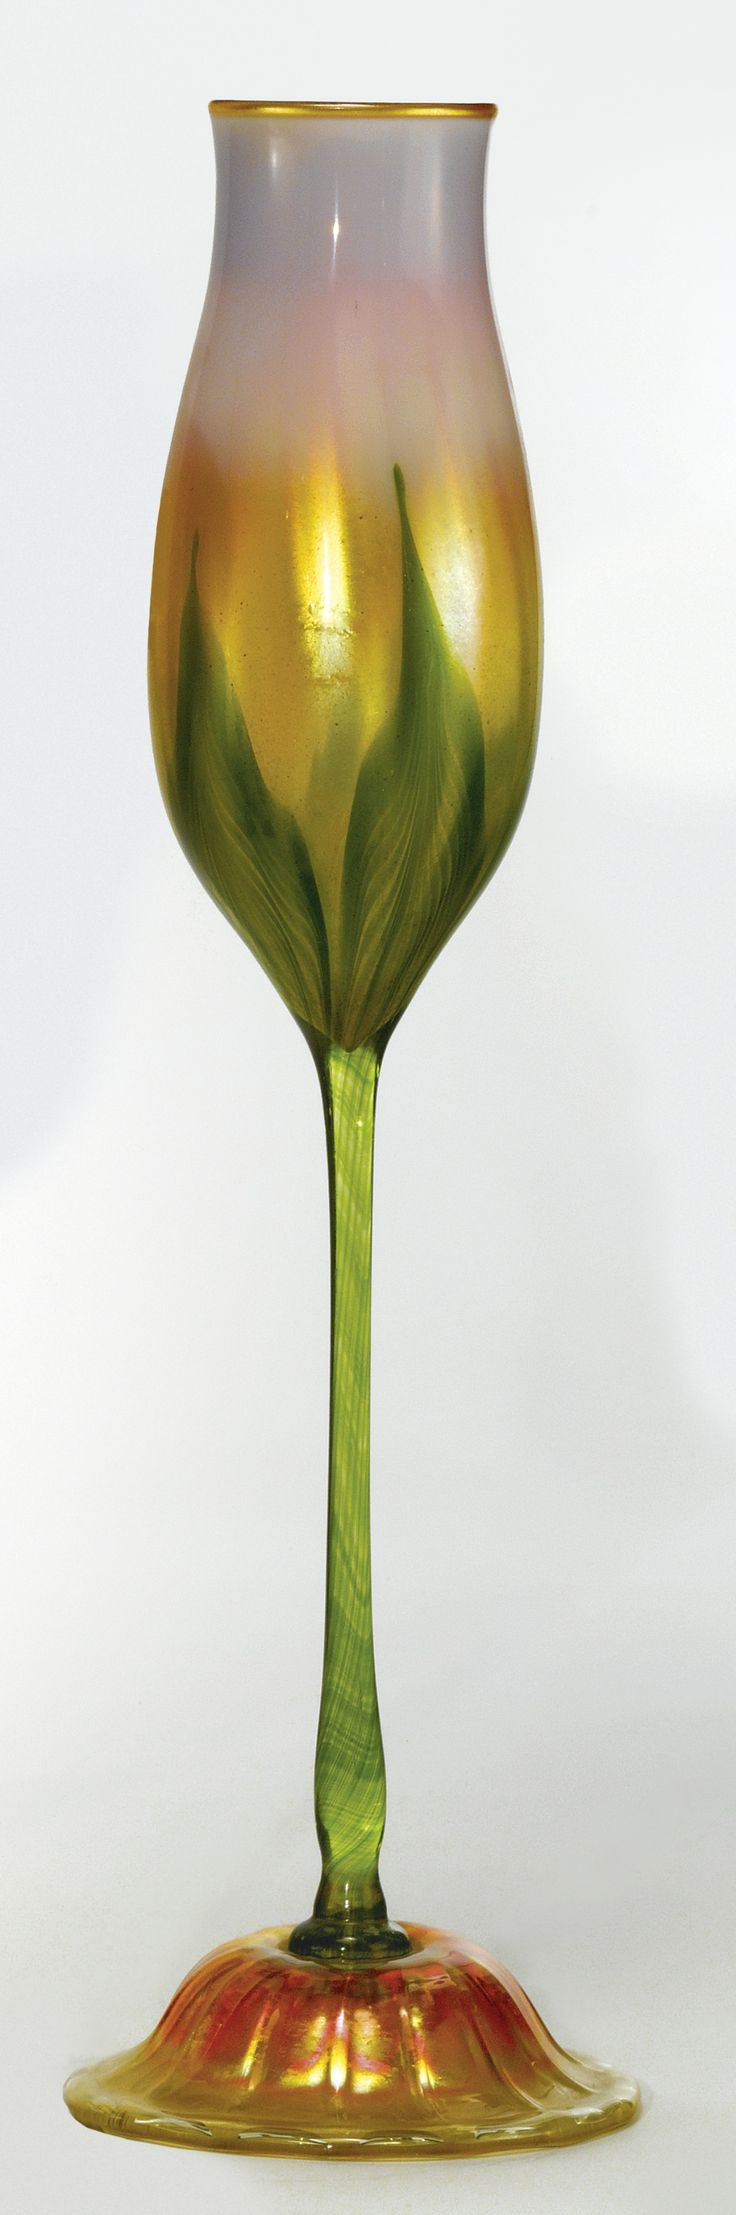 Tiffany Tulip Vase Of 199 Best Tiffany Images On Pinterest Stained Glass Windows for Tiffany Studios A Monumental Floriform Vase Engraved L C Tiffany Favrile and L C T Y8621 and